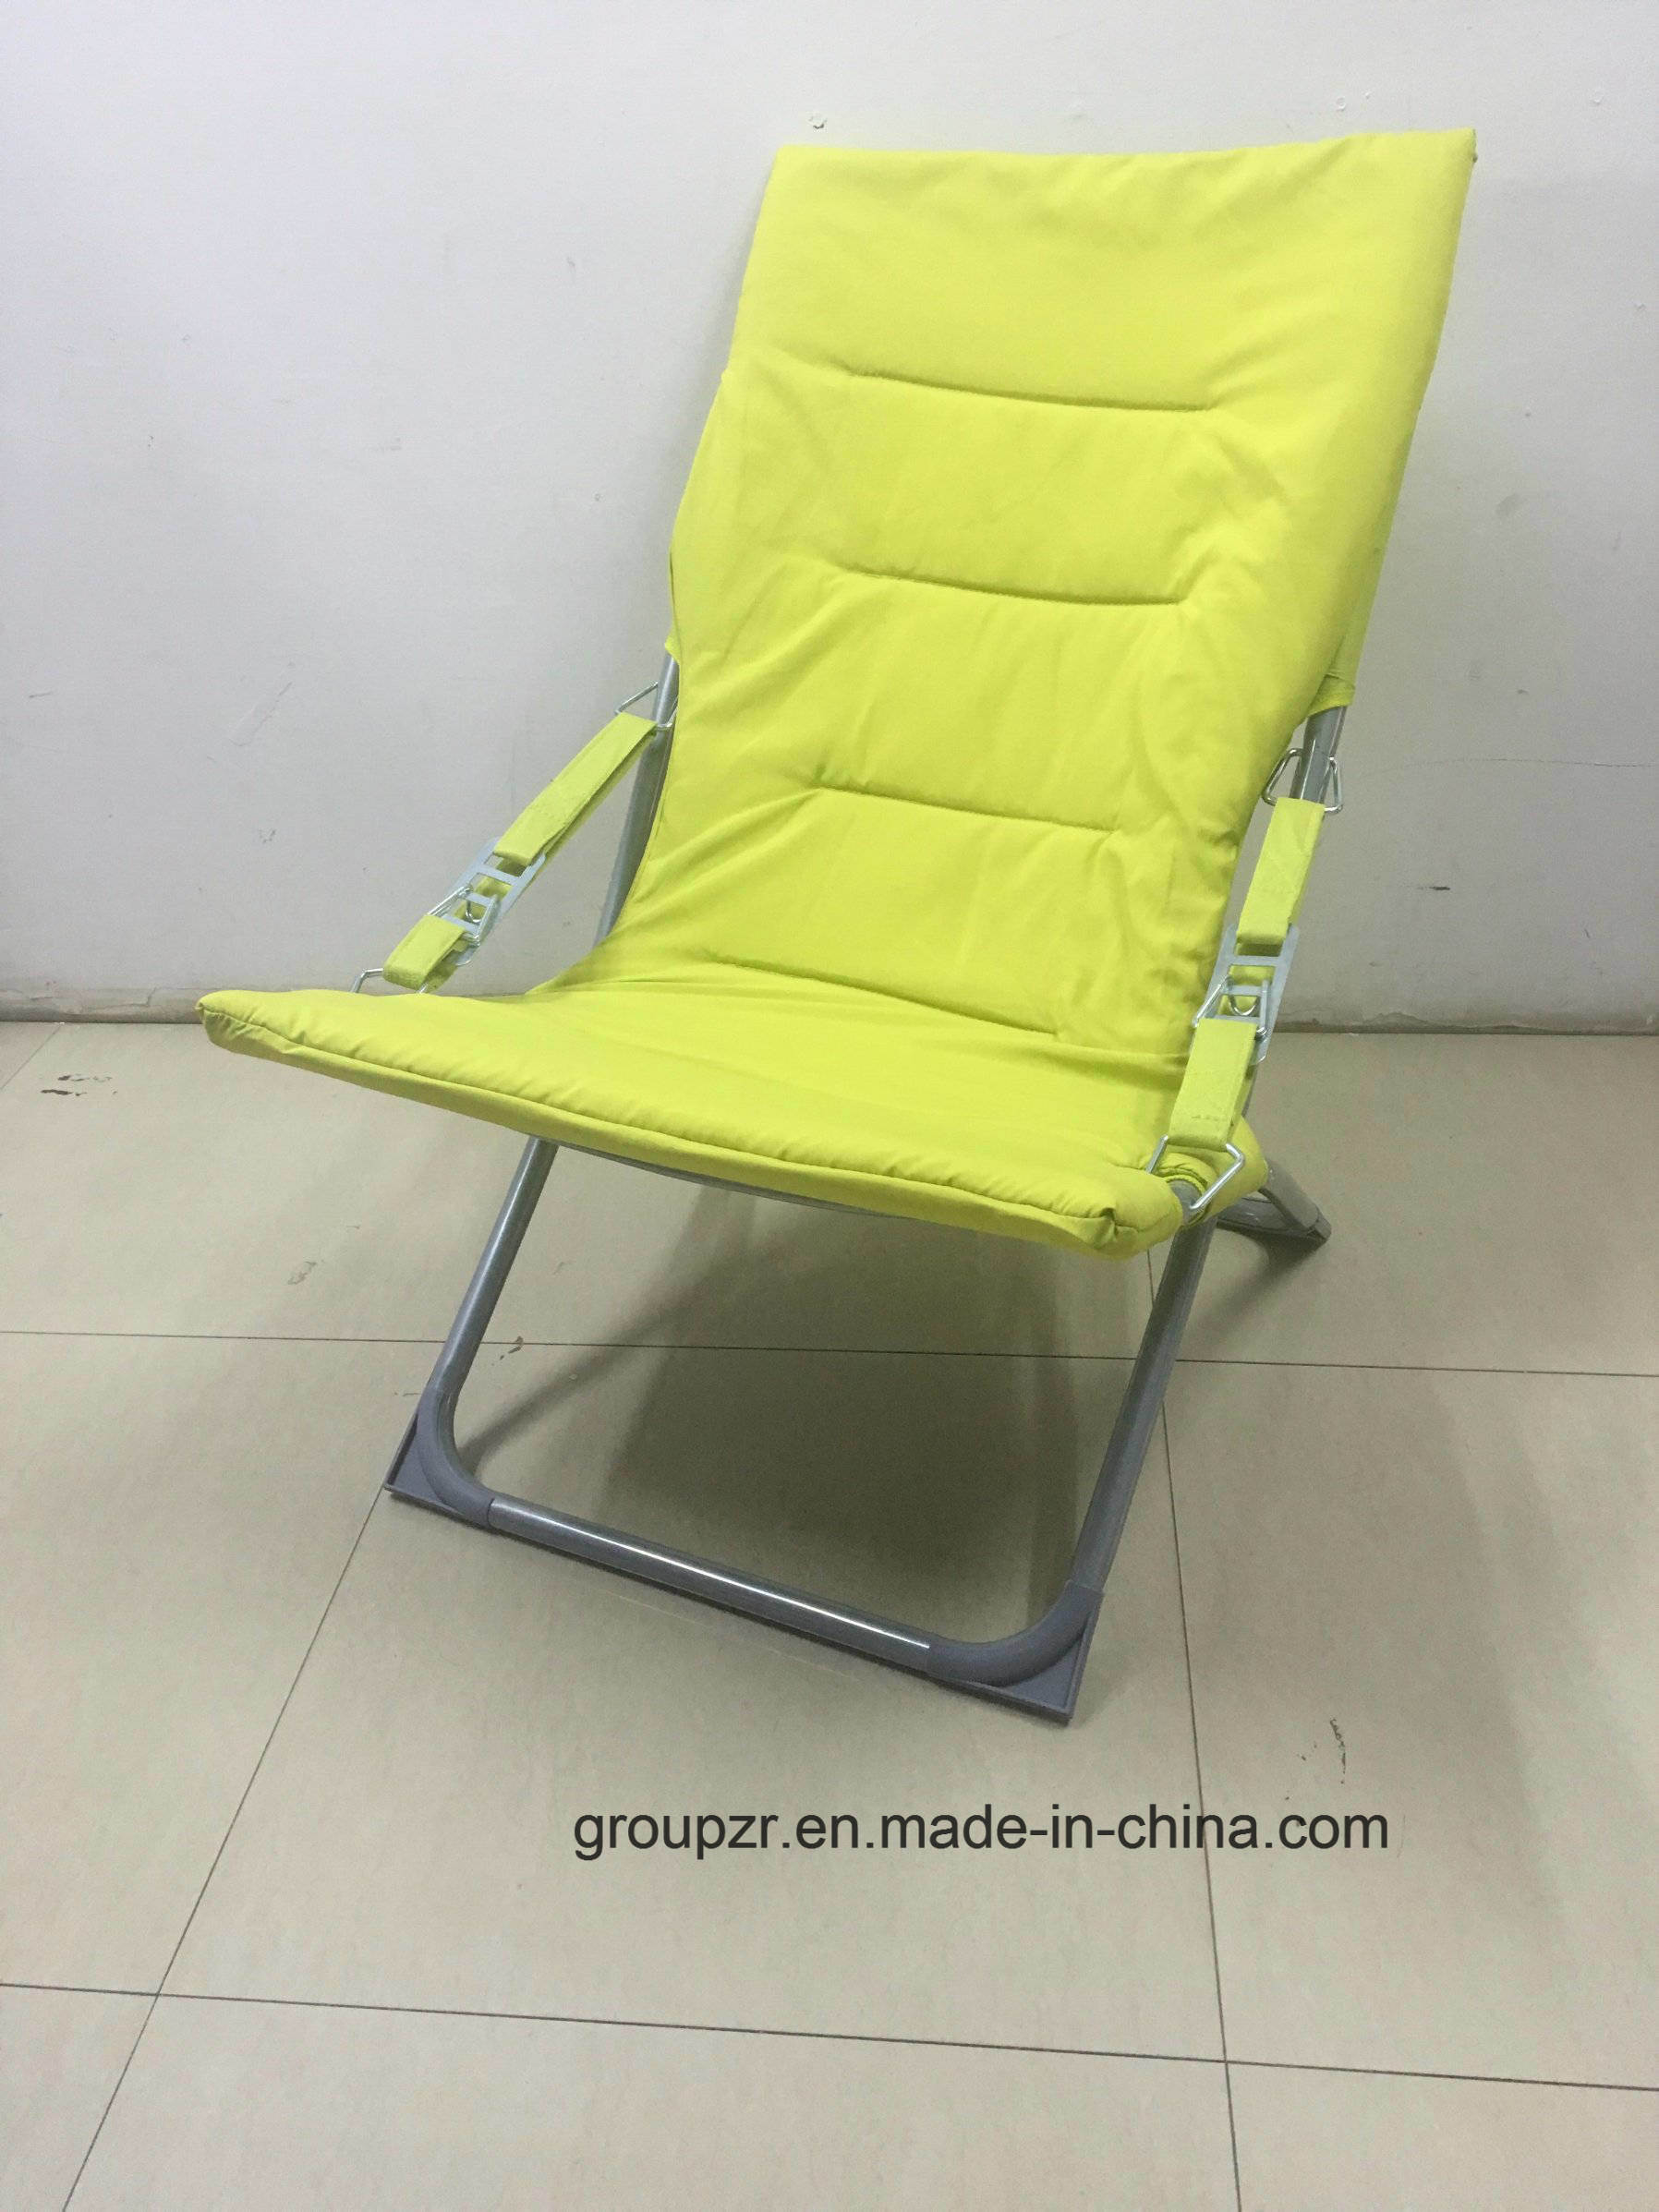 Outdoor Folding Beach Chair Camping Chair pictures & photos